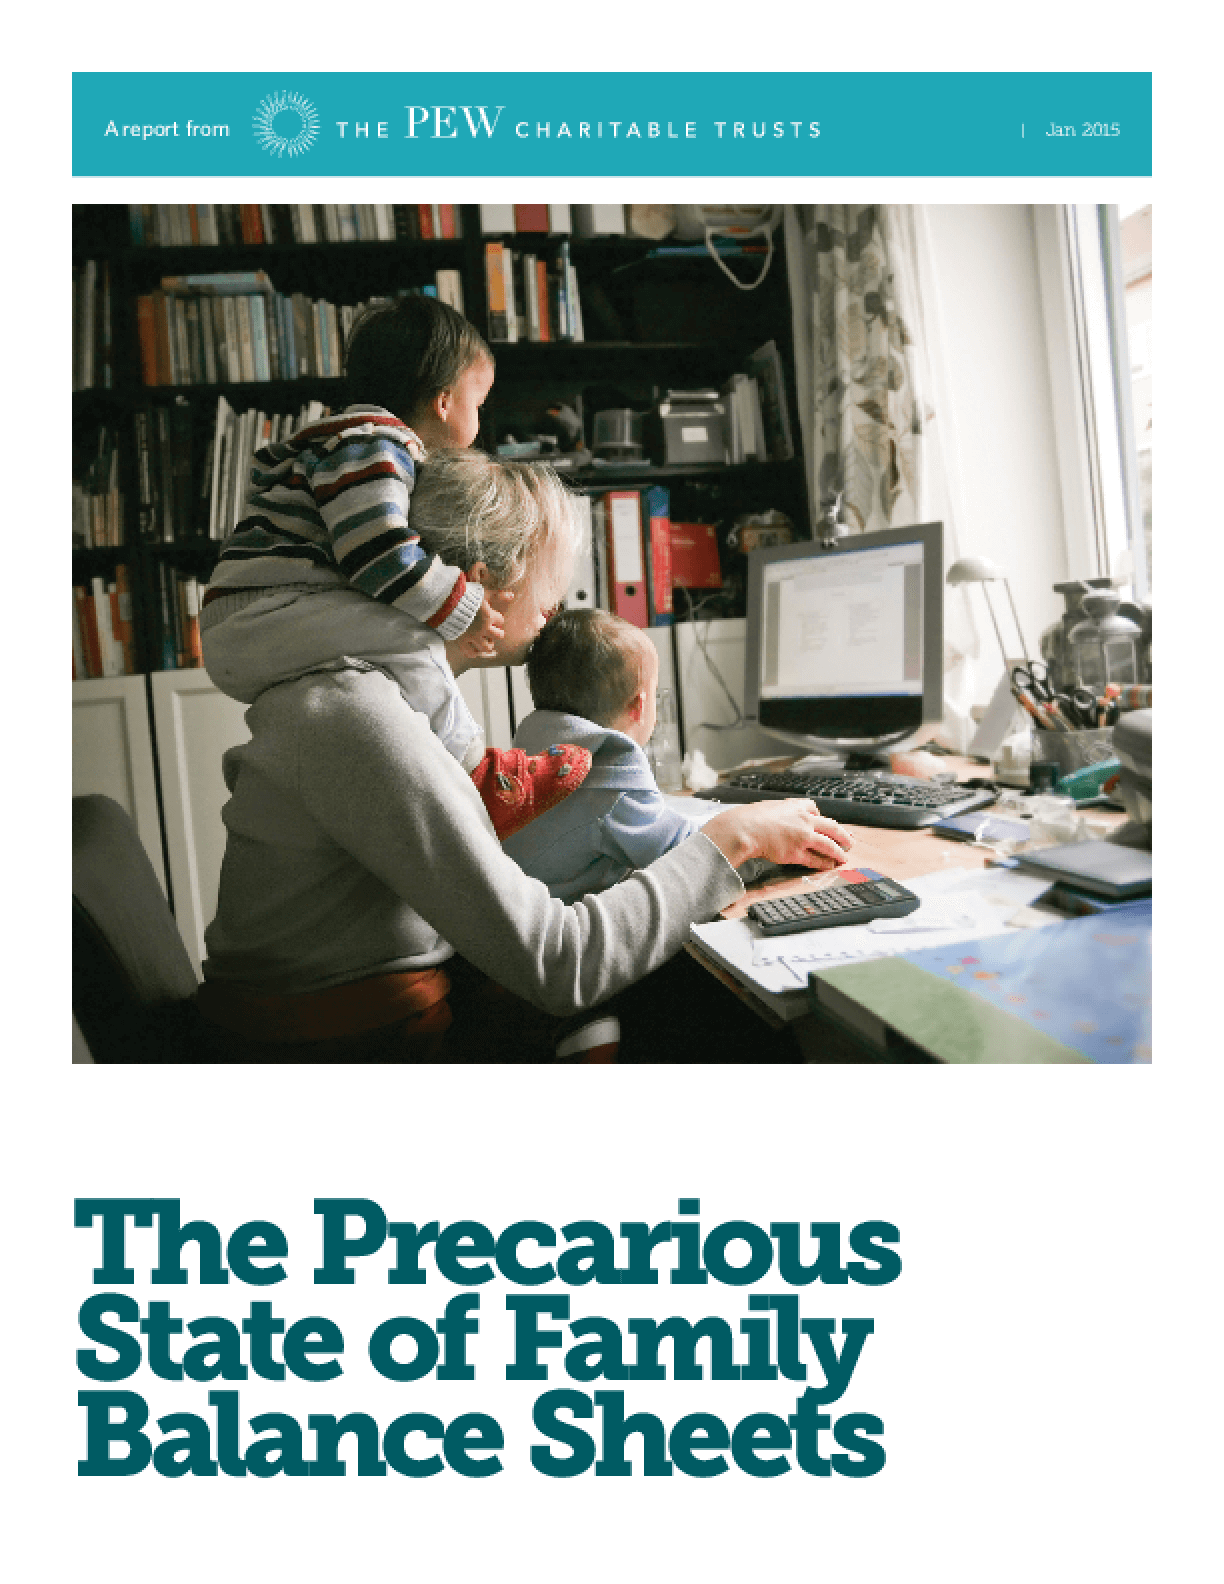 The Precarious State of Family Balance Sheets